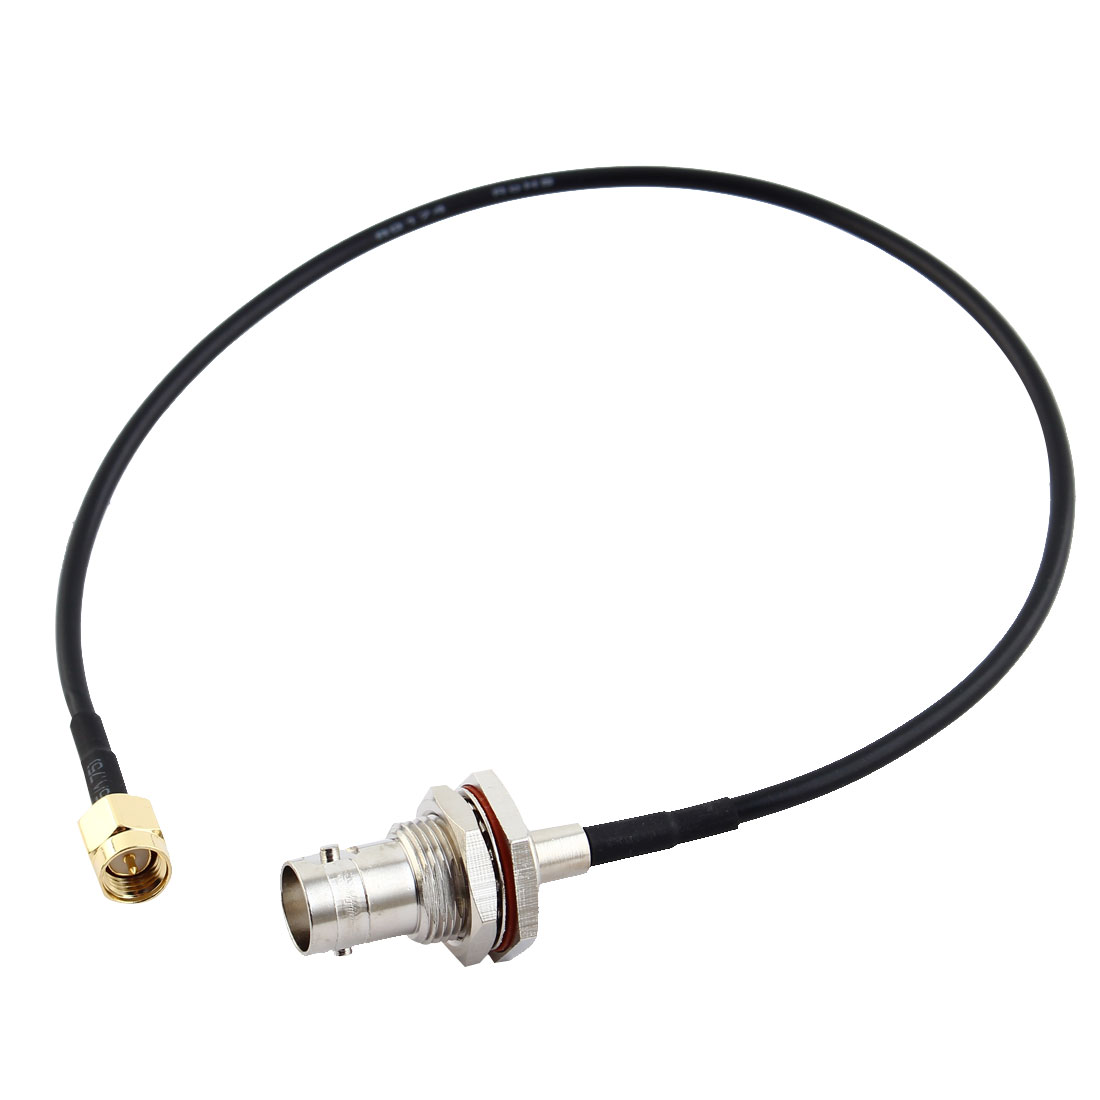 SMA Male to BNC Female Adapter Connector Antenna Pigtail Cable 13 Inch